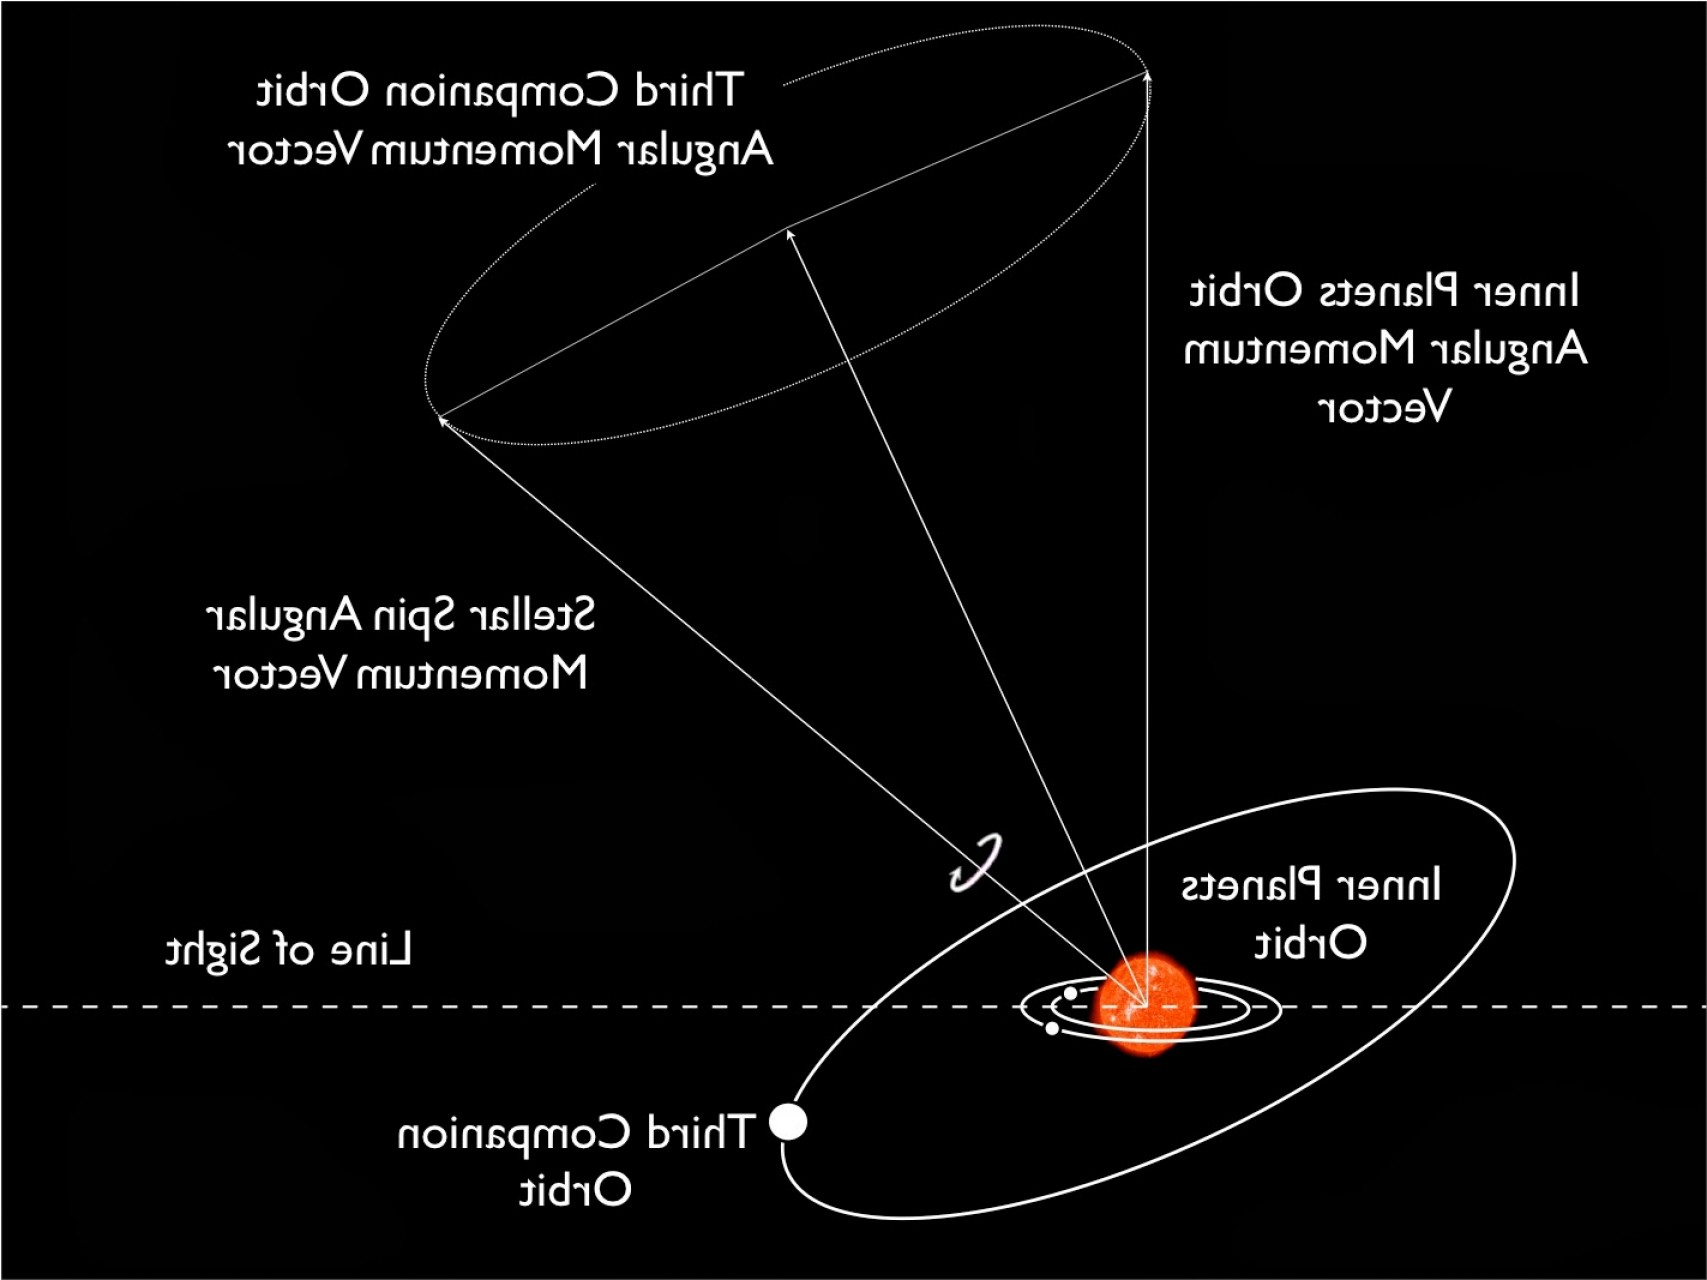 Angular Momentum Vectors Drawing: Do Solar Systems Typically Spin In The Same Direction As Their Galaxy